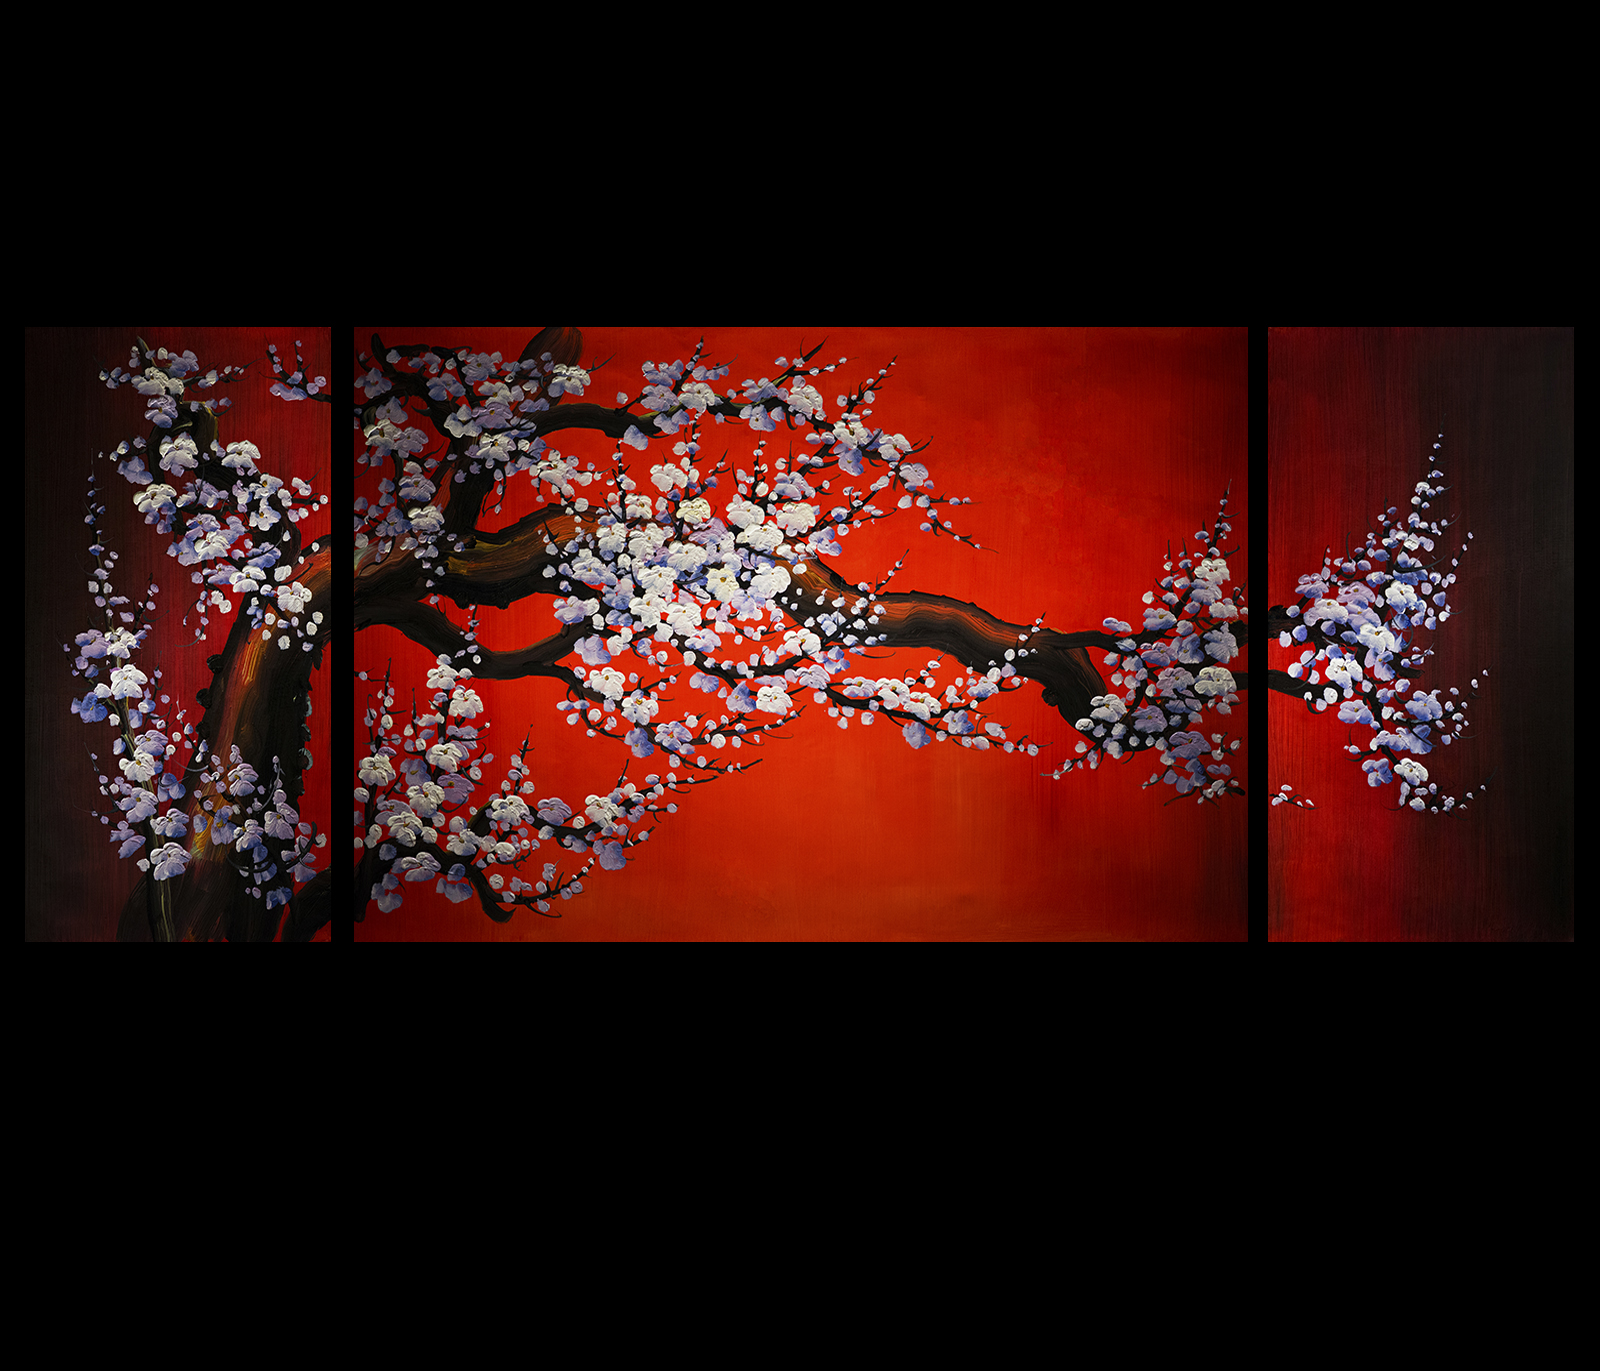 Canvas Wall Art Decor Cherry Blossom Painting Feng Shui Painting